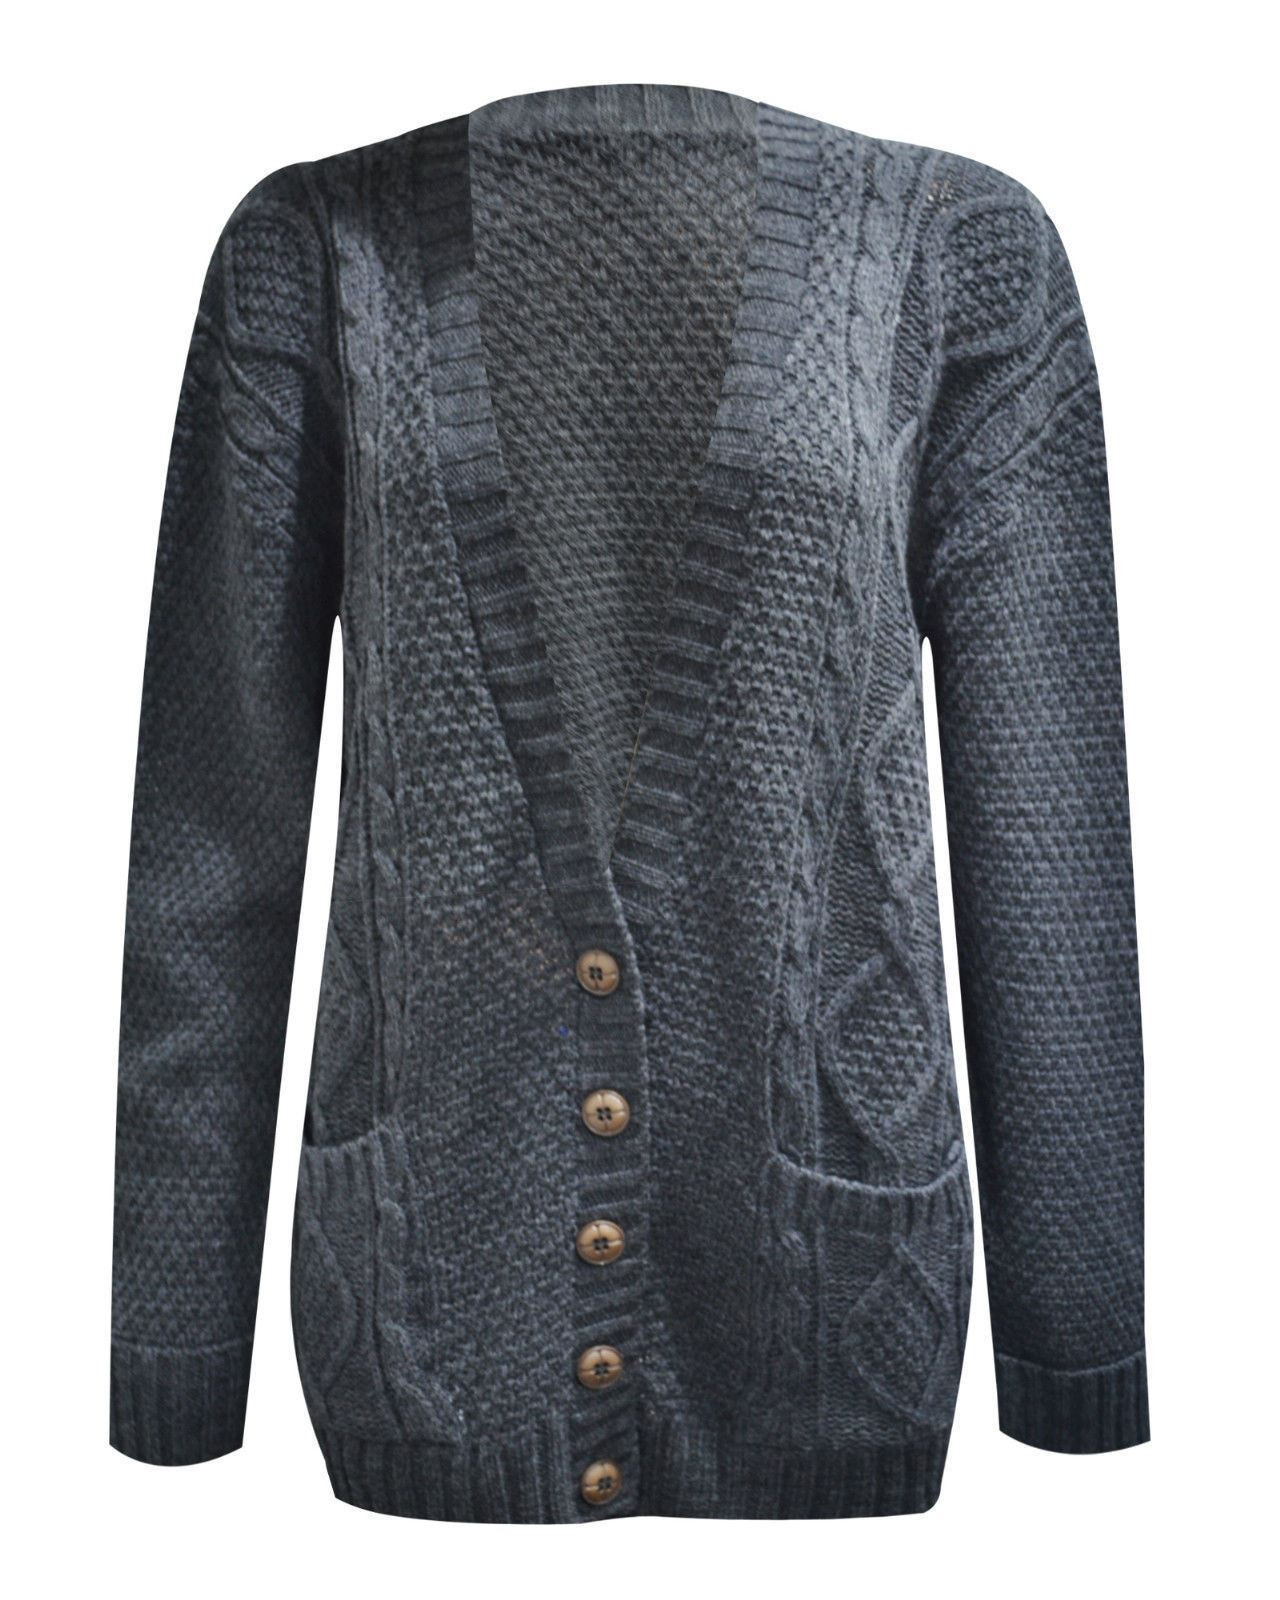 Womens La s Chunky Cable Knit Cardigan Button Long